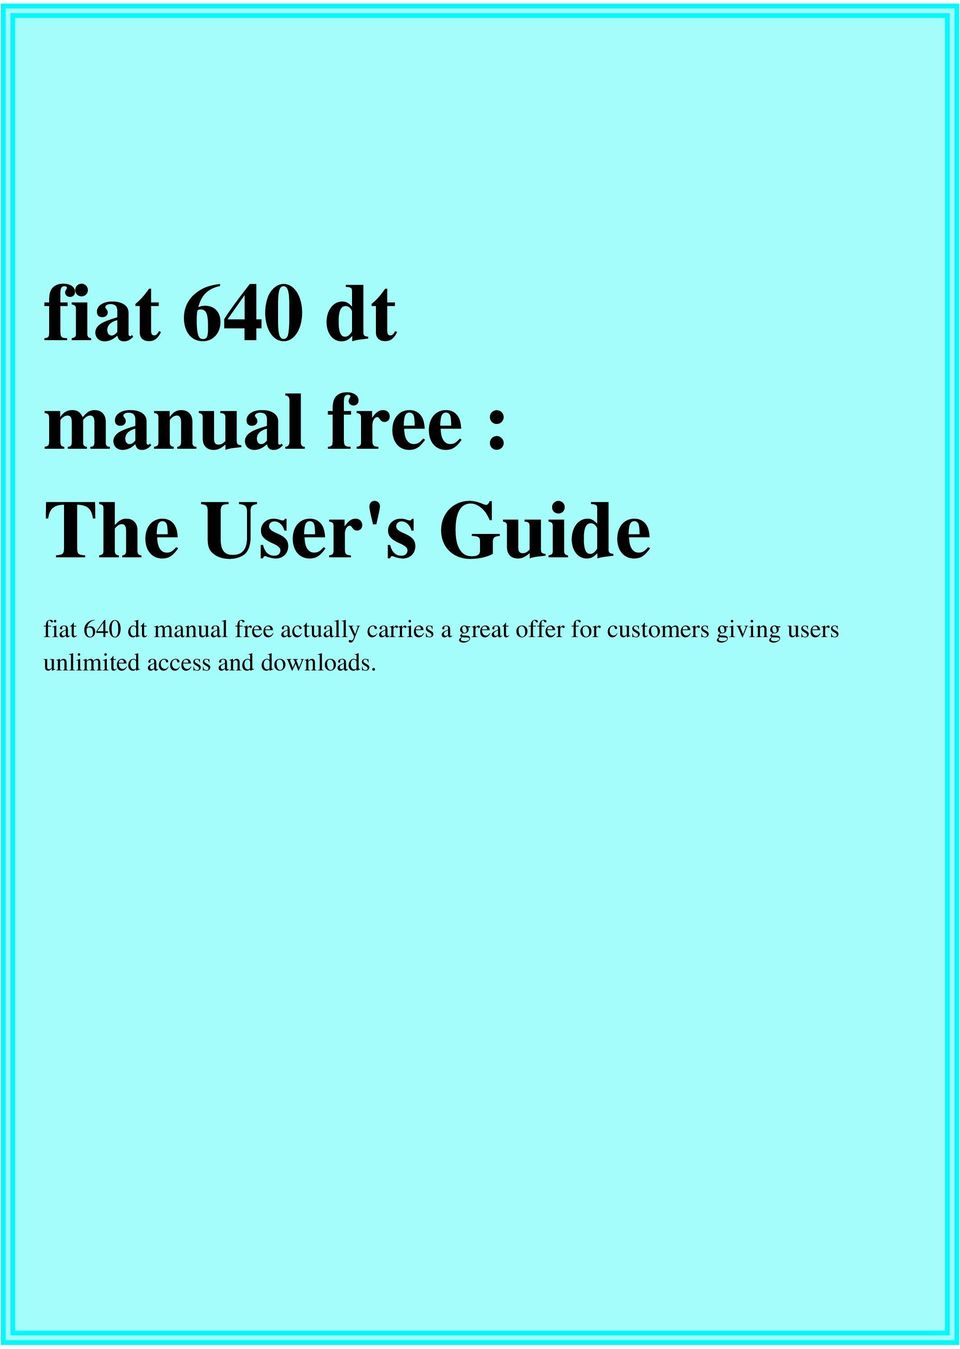 Fiat 640 Dt Manual Free The Users Guide Pdf Wiring Diagram Air Conditioner Ebook Transcription